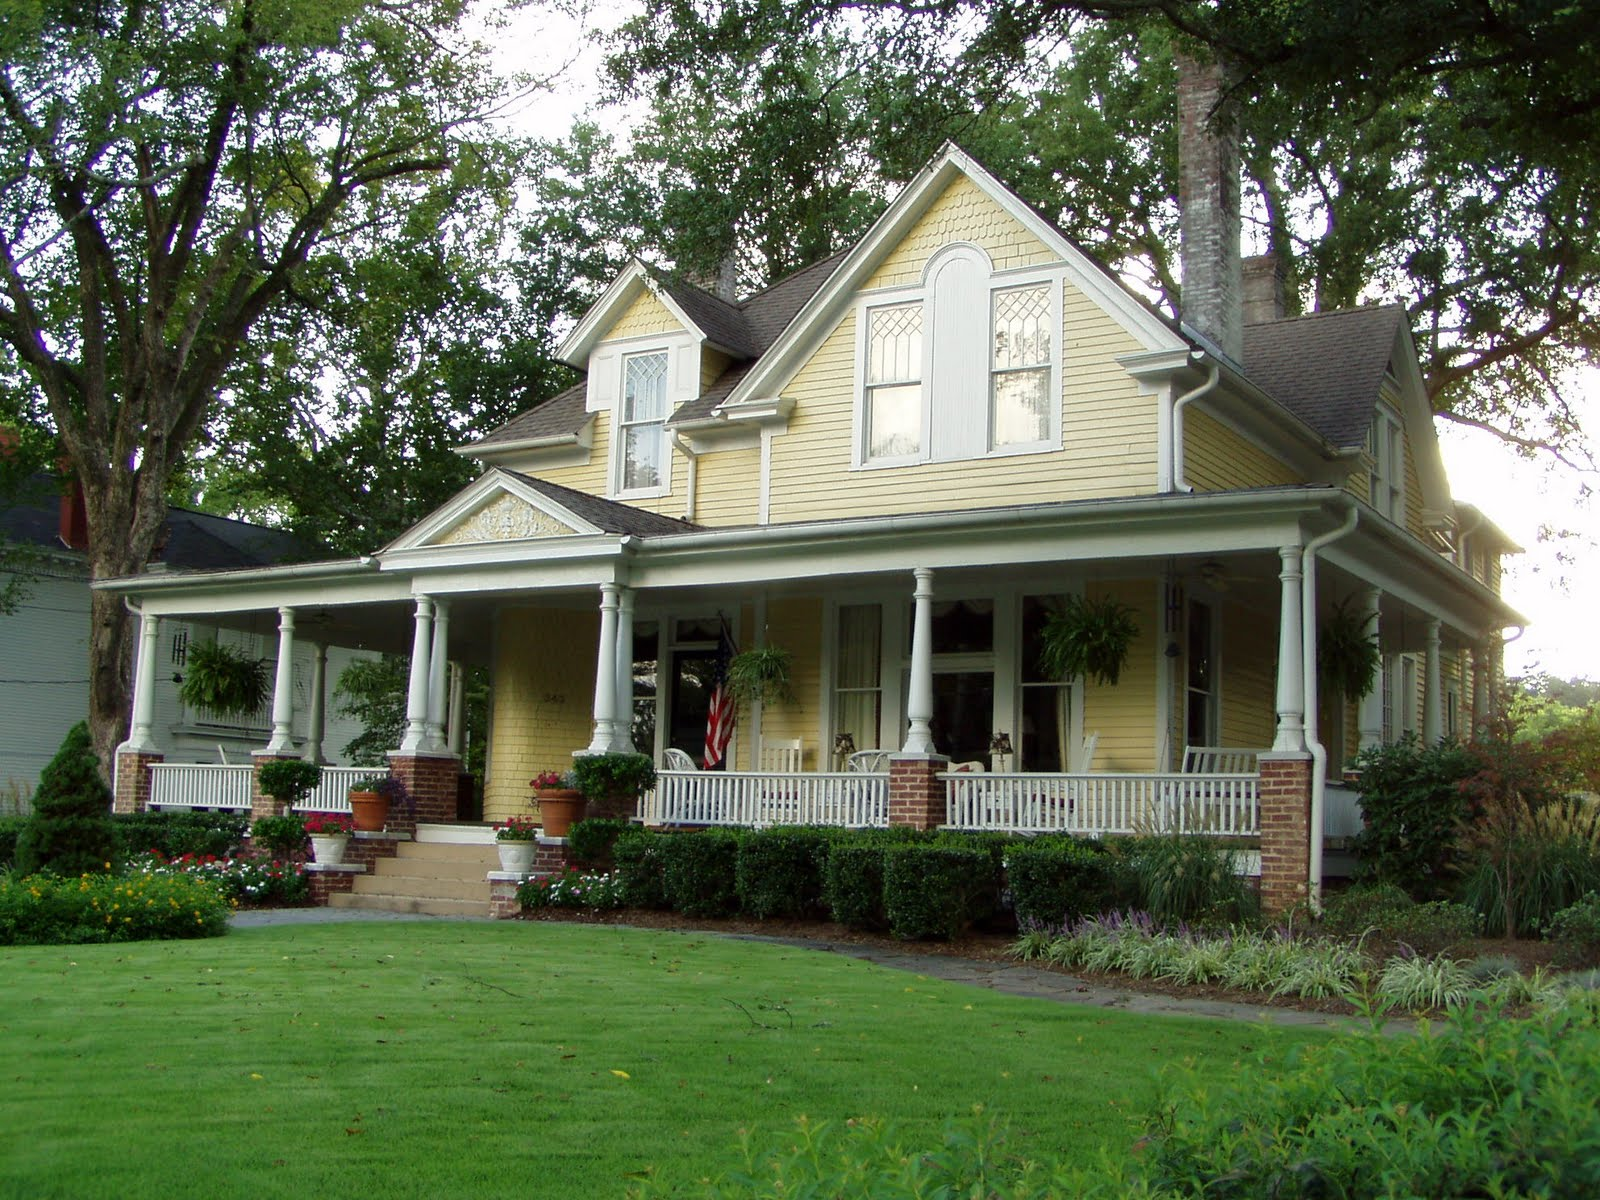 Let s pretend it s summertime again and we ll go for a for Homes with porches all the way around